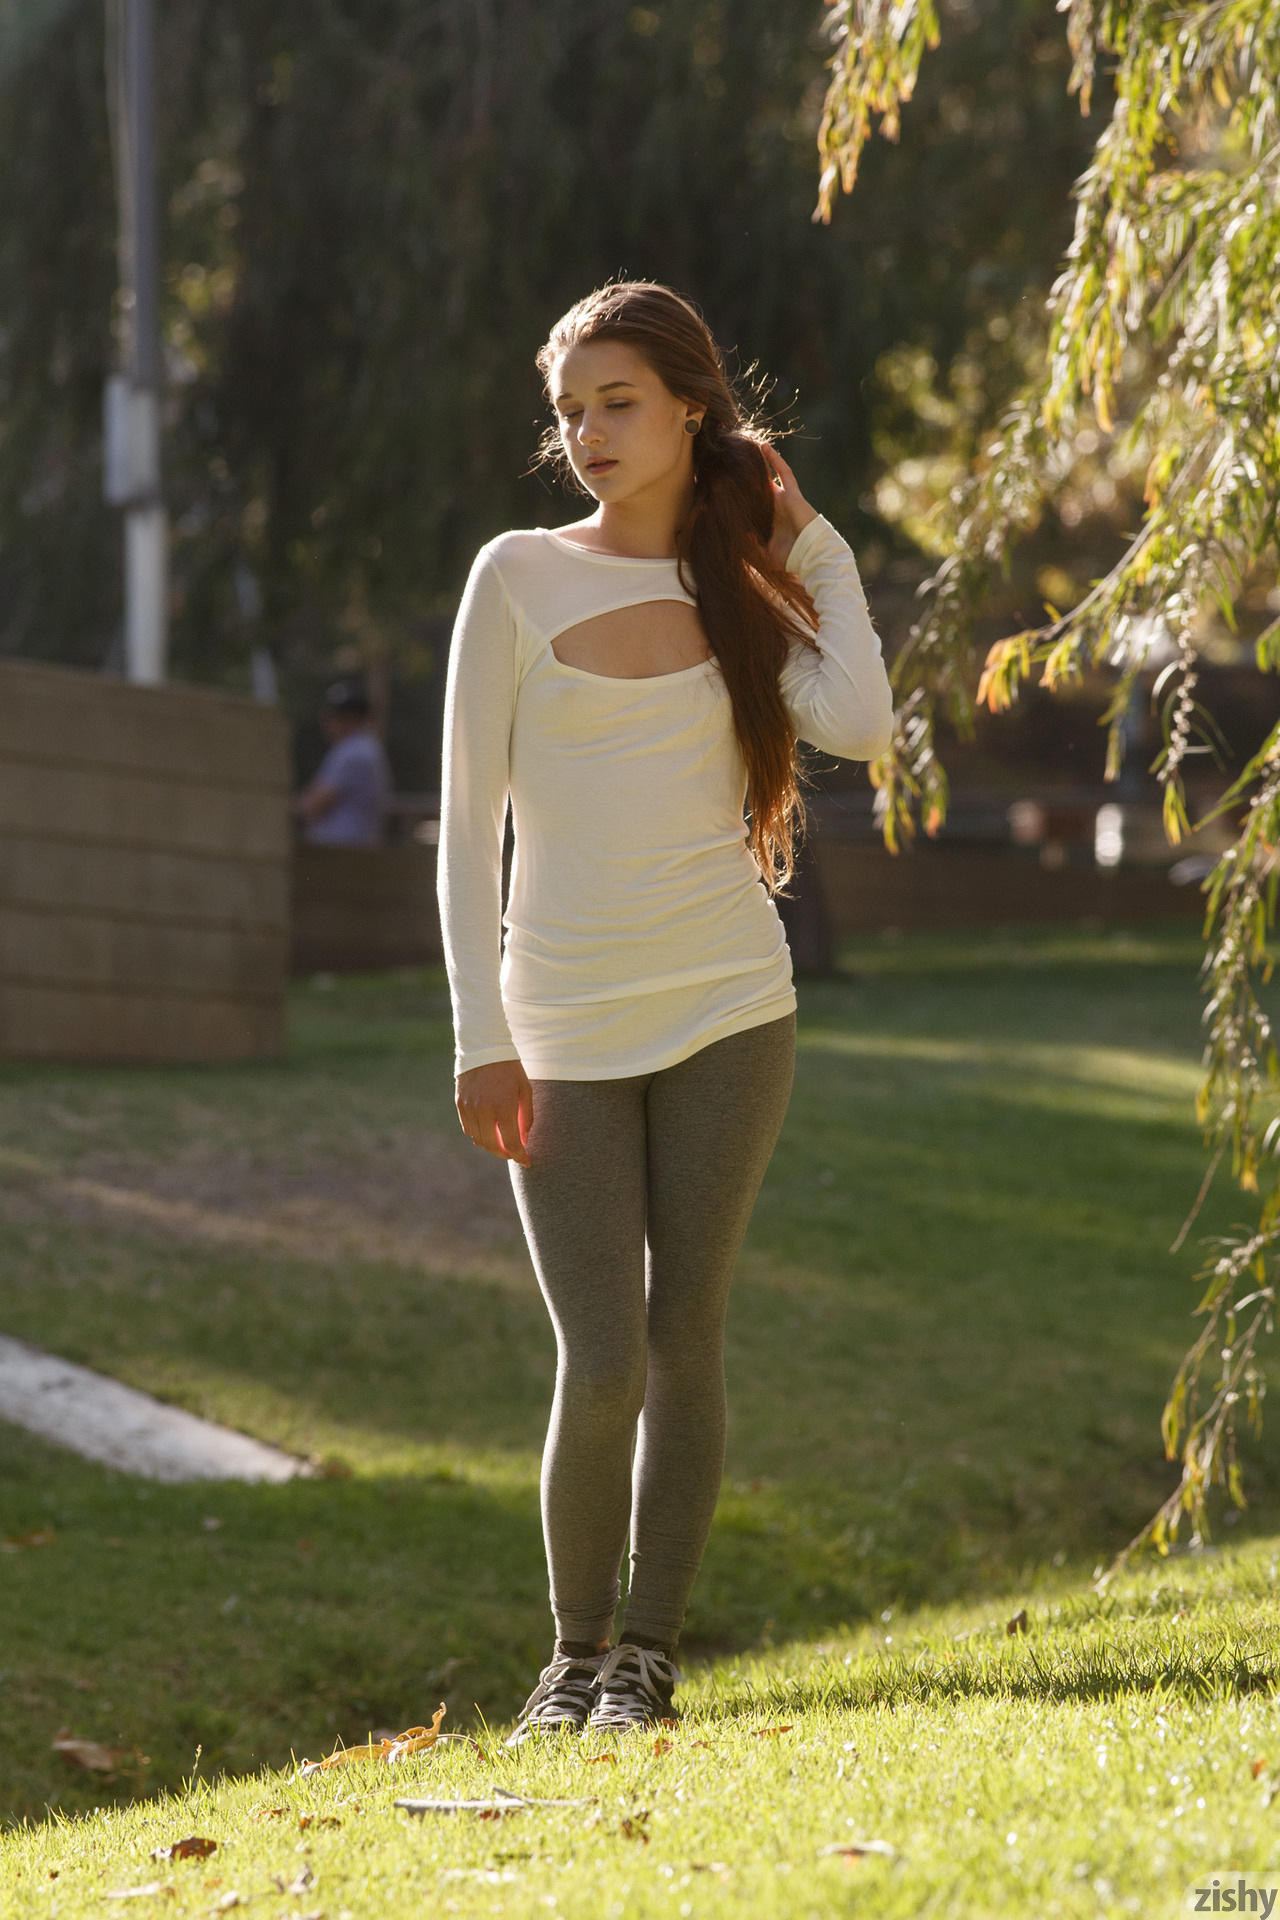 Alex Mae in the Park Unrated